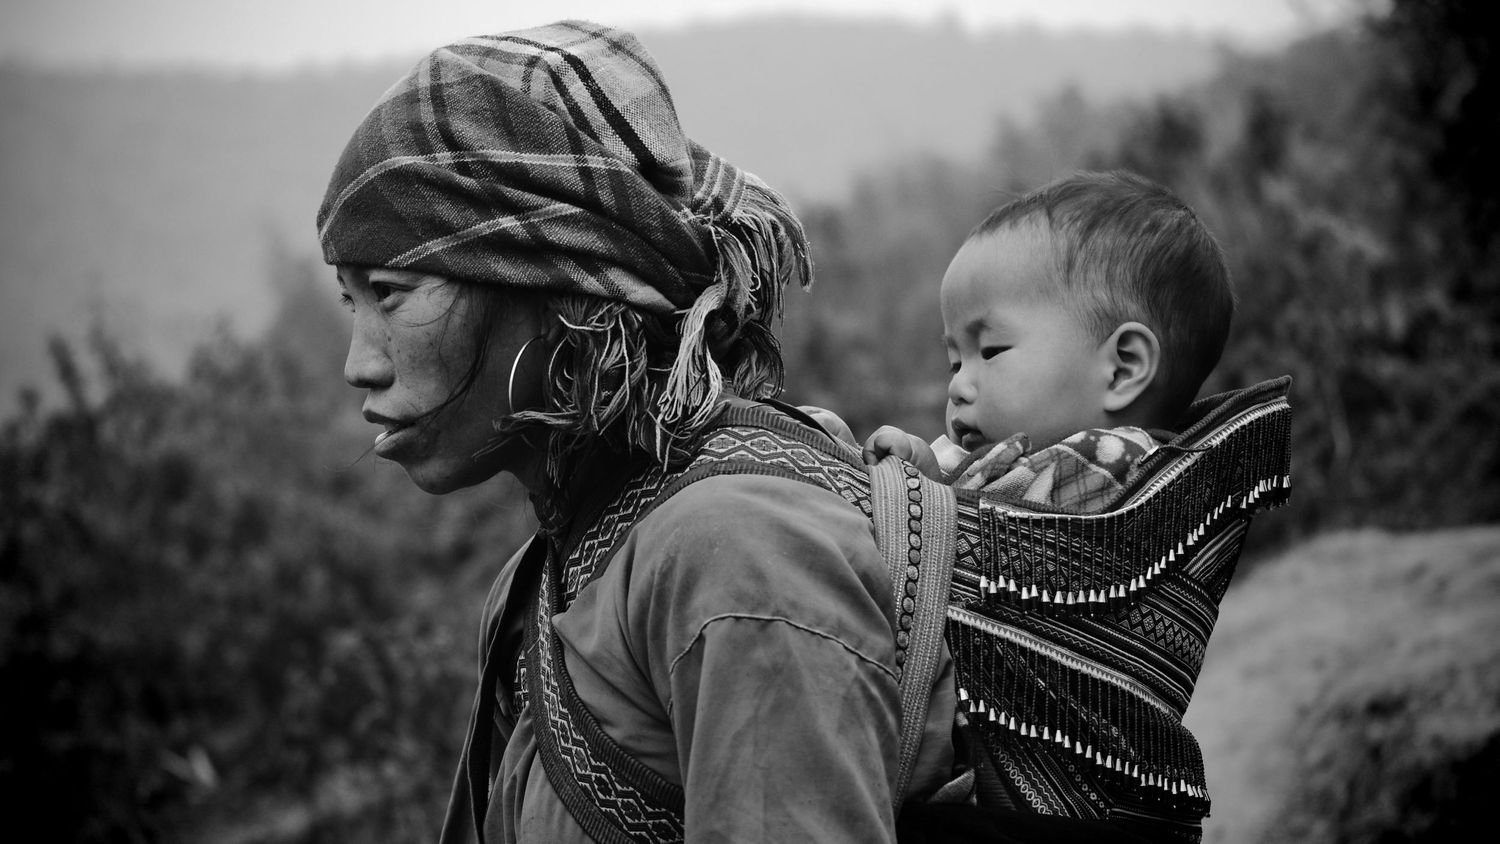 Hmong mother with child. Sapa, Vietnam.